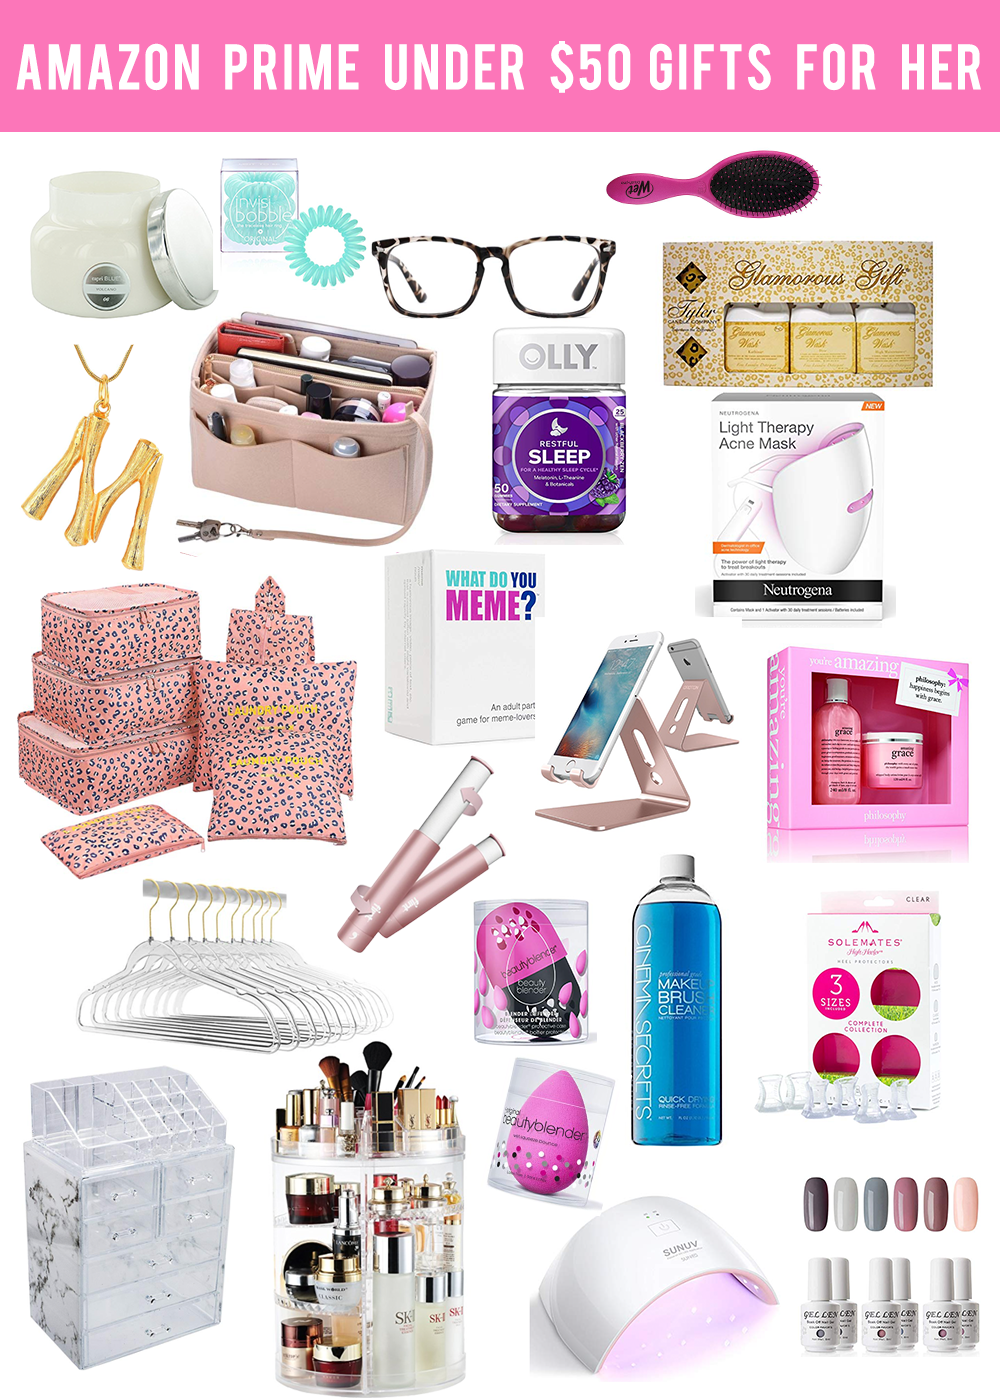 AMAZON PRIME GIFTS FOR HER UNDER $50 | W I N T E R ...